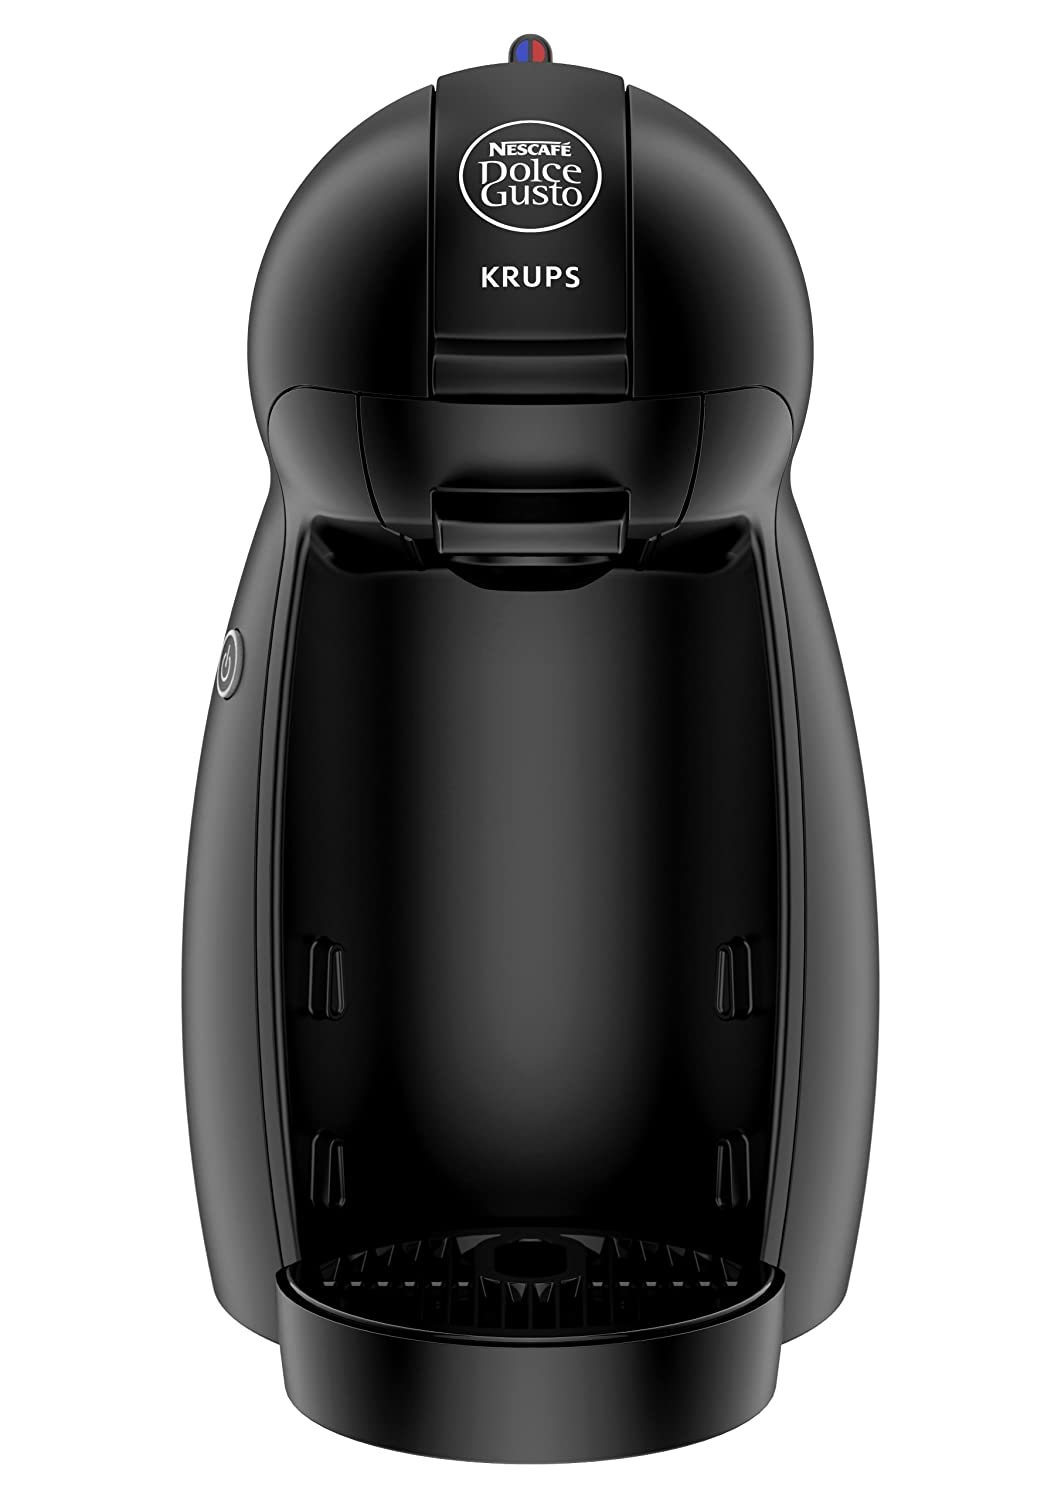 NESCAFE Dolce Gusto Piccolo Manual Coffee Machine by Krups - Black KP100040